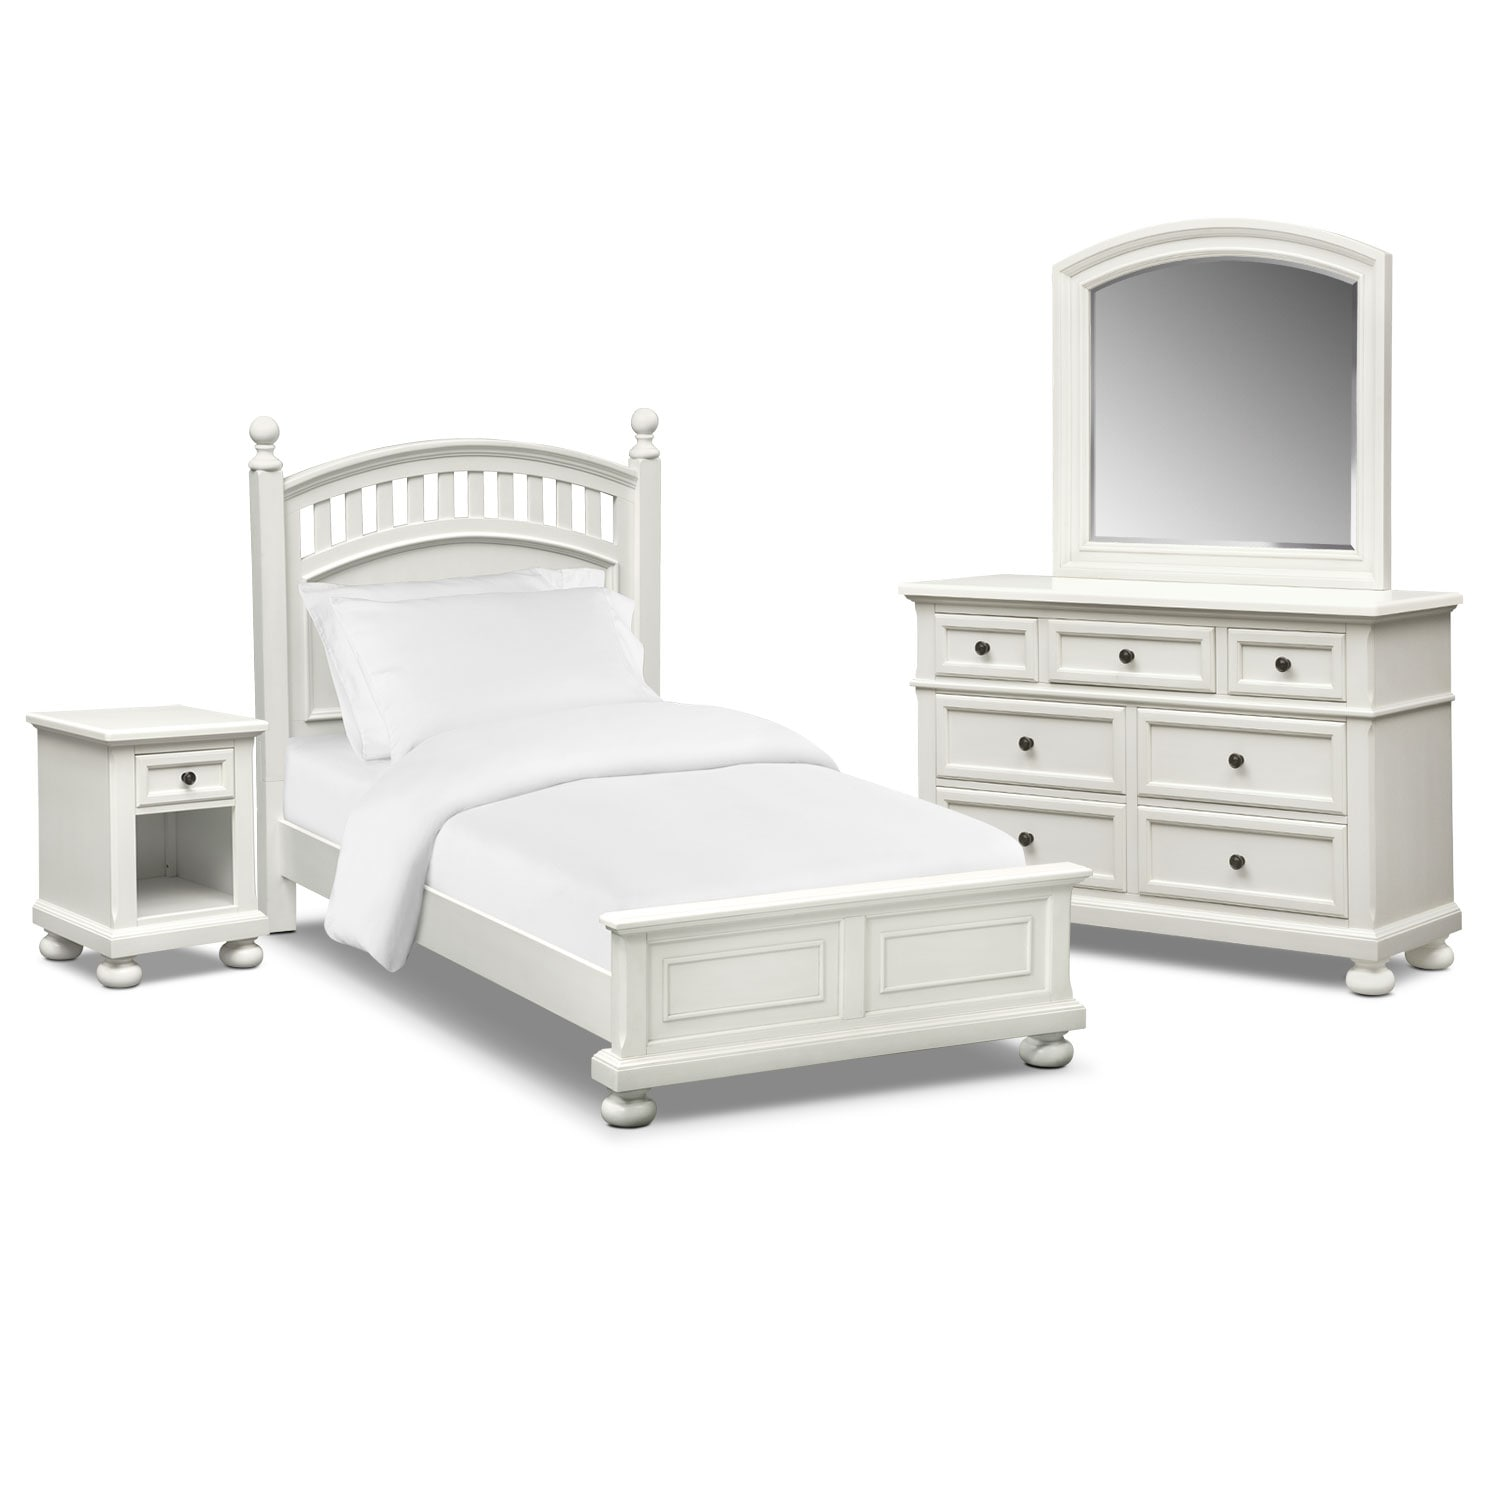 Hanover Youth 6-Piece Twin Poster Bedroom Set - White